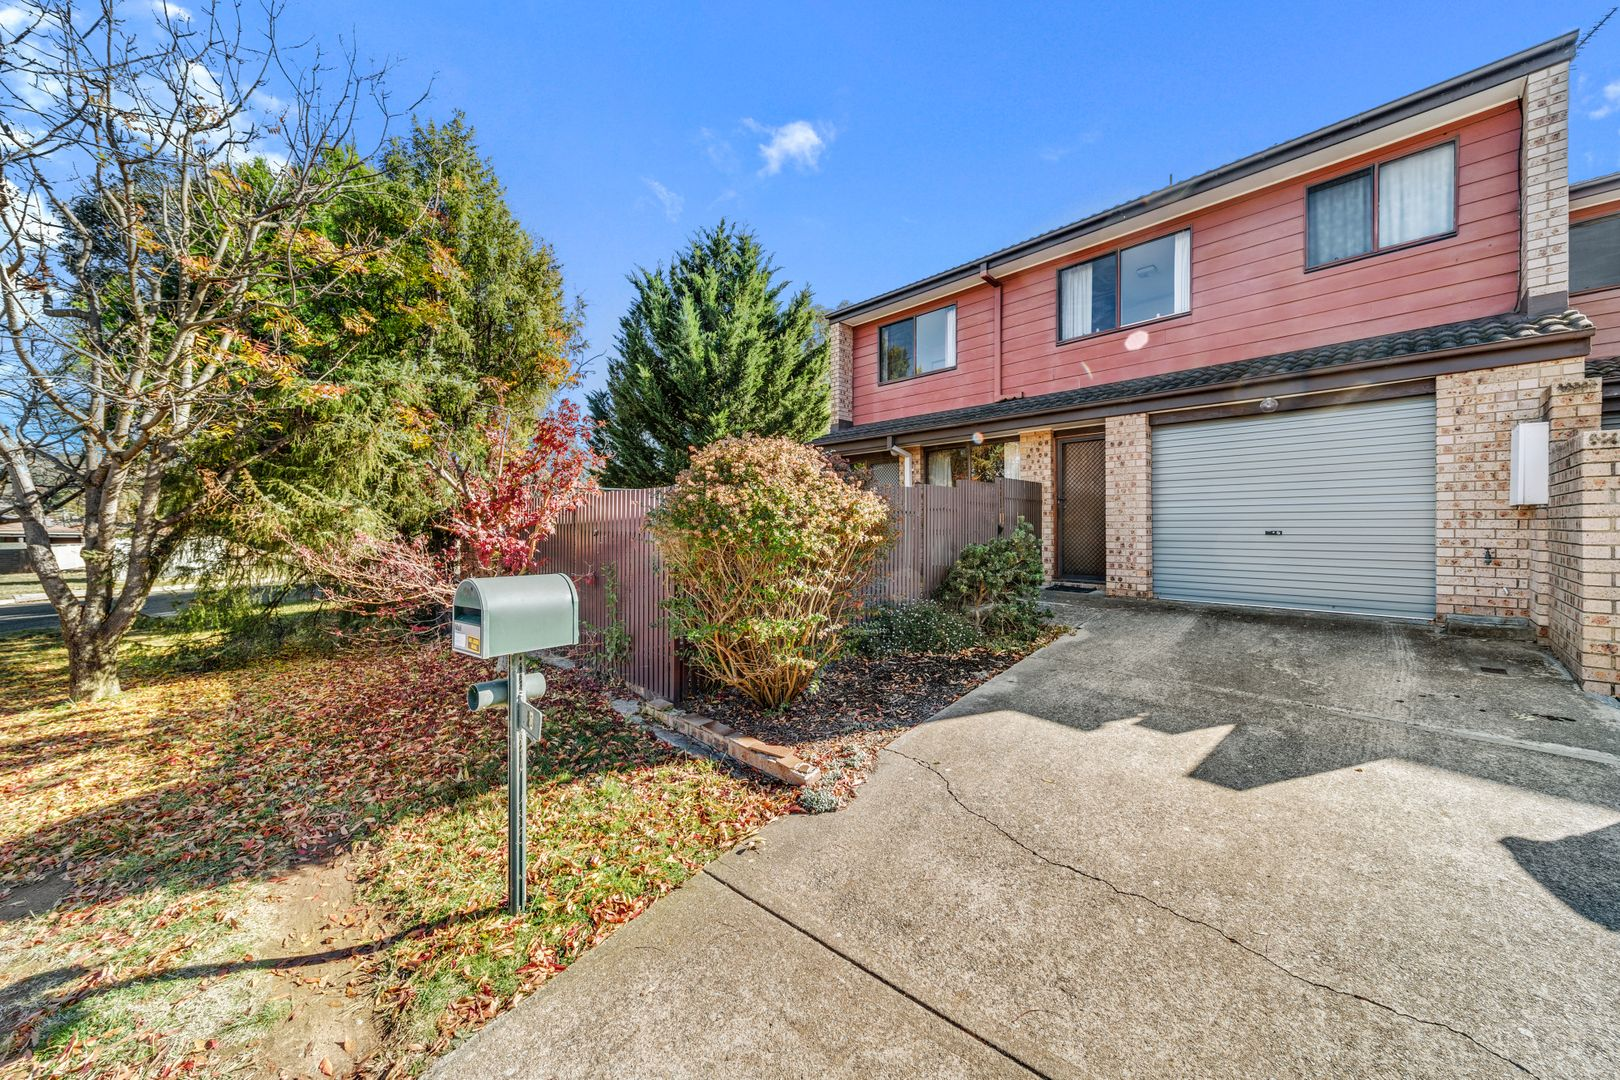 3 bedrooms Townhouse in 10/10 Ashby Circuit KAMBAH ACT, 2902